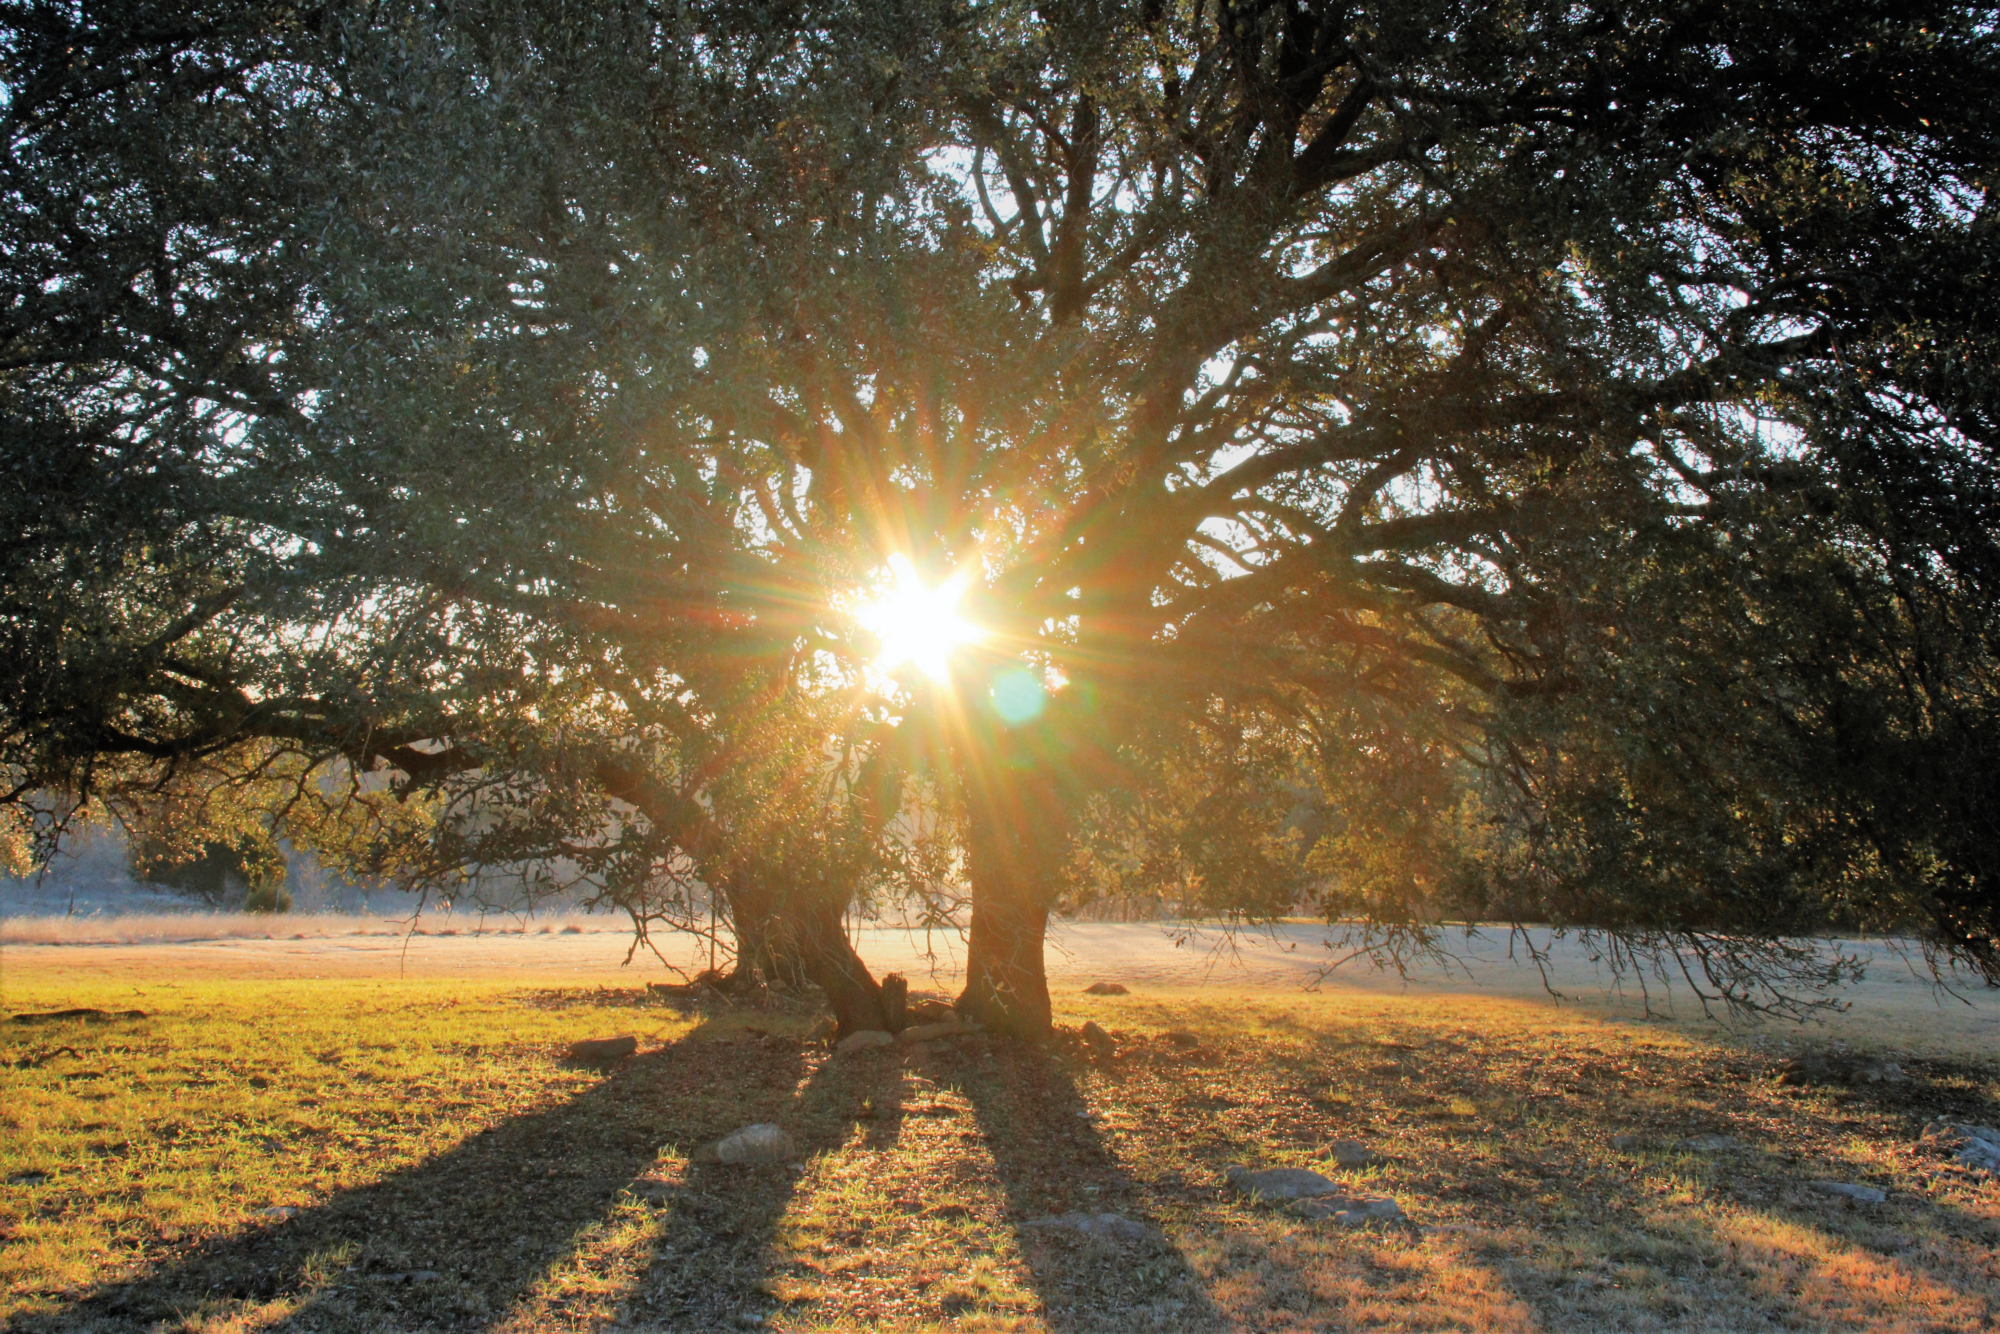 Pursuing their passion in the Texas Hill Country